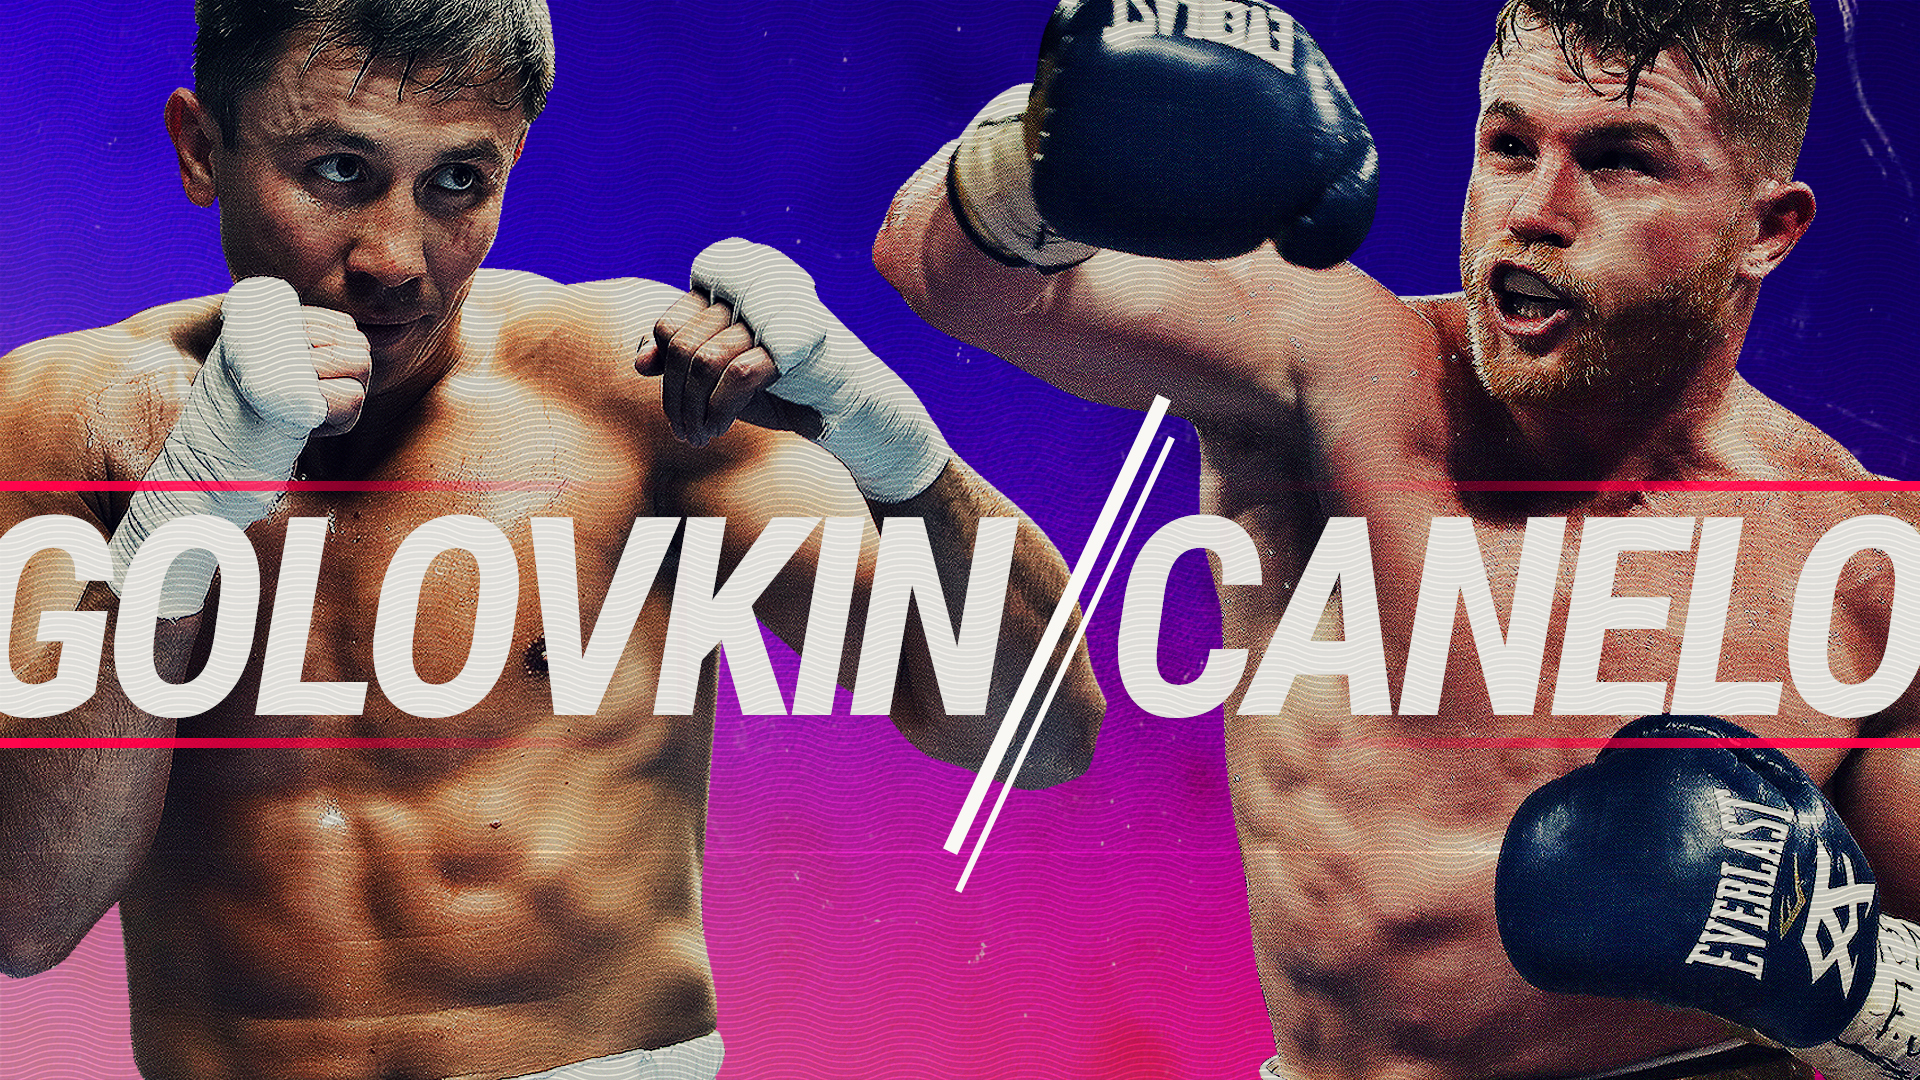 Best bets for GGG-Canelo fight